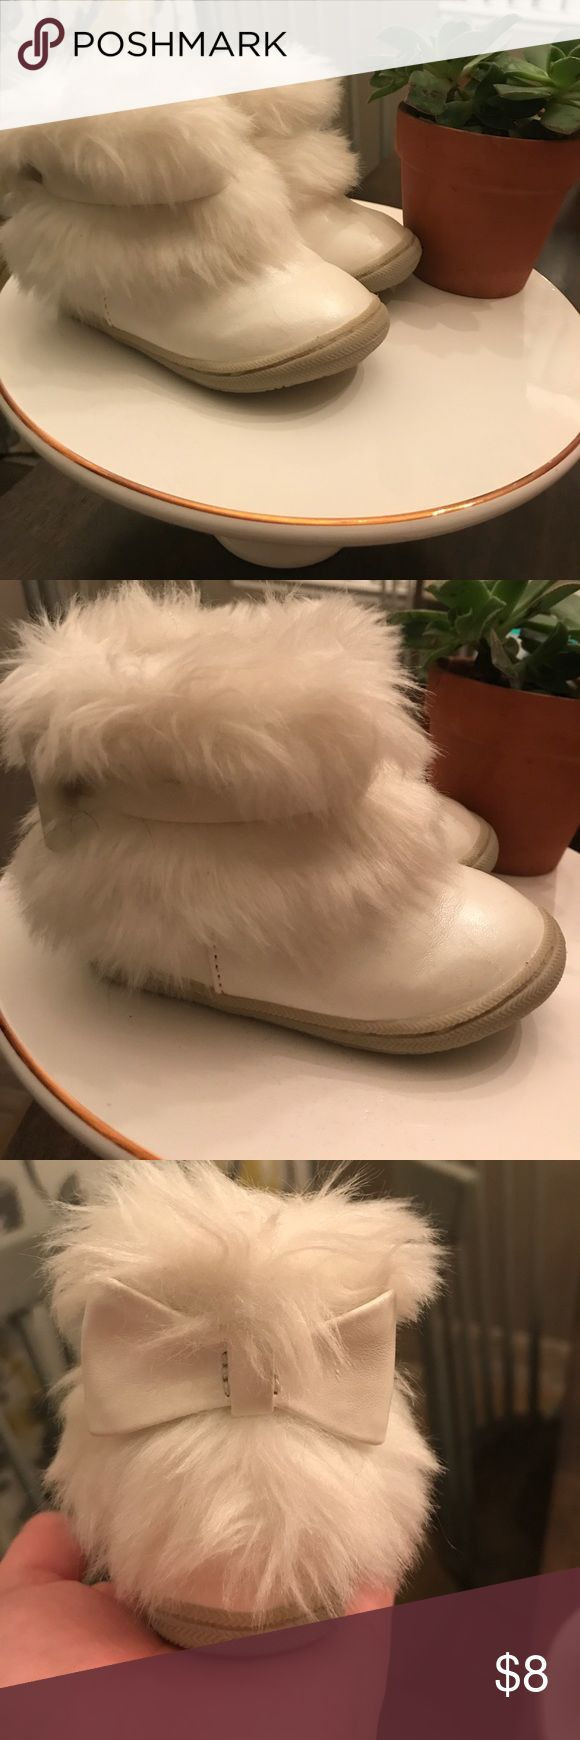 Toddler girl boots Good condition. White faux fur baby boots. Size 3. OshKosh Osh Kosh Shoes Baby & Walker